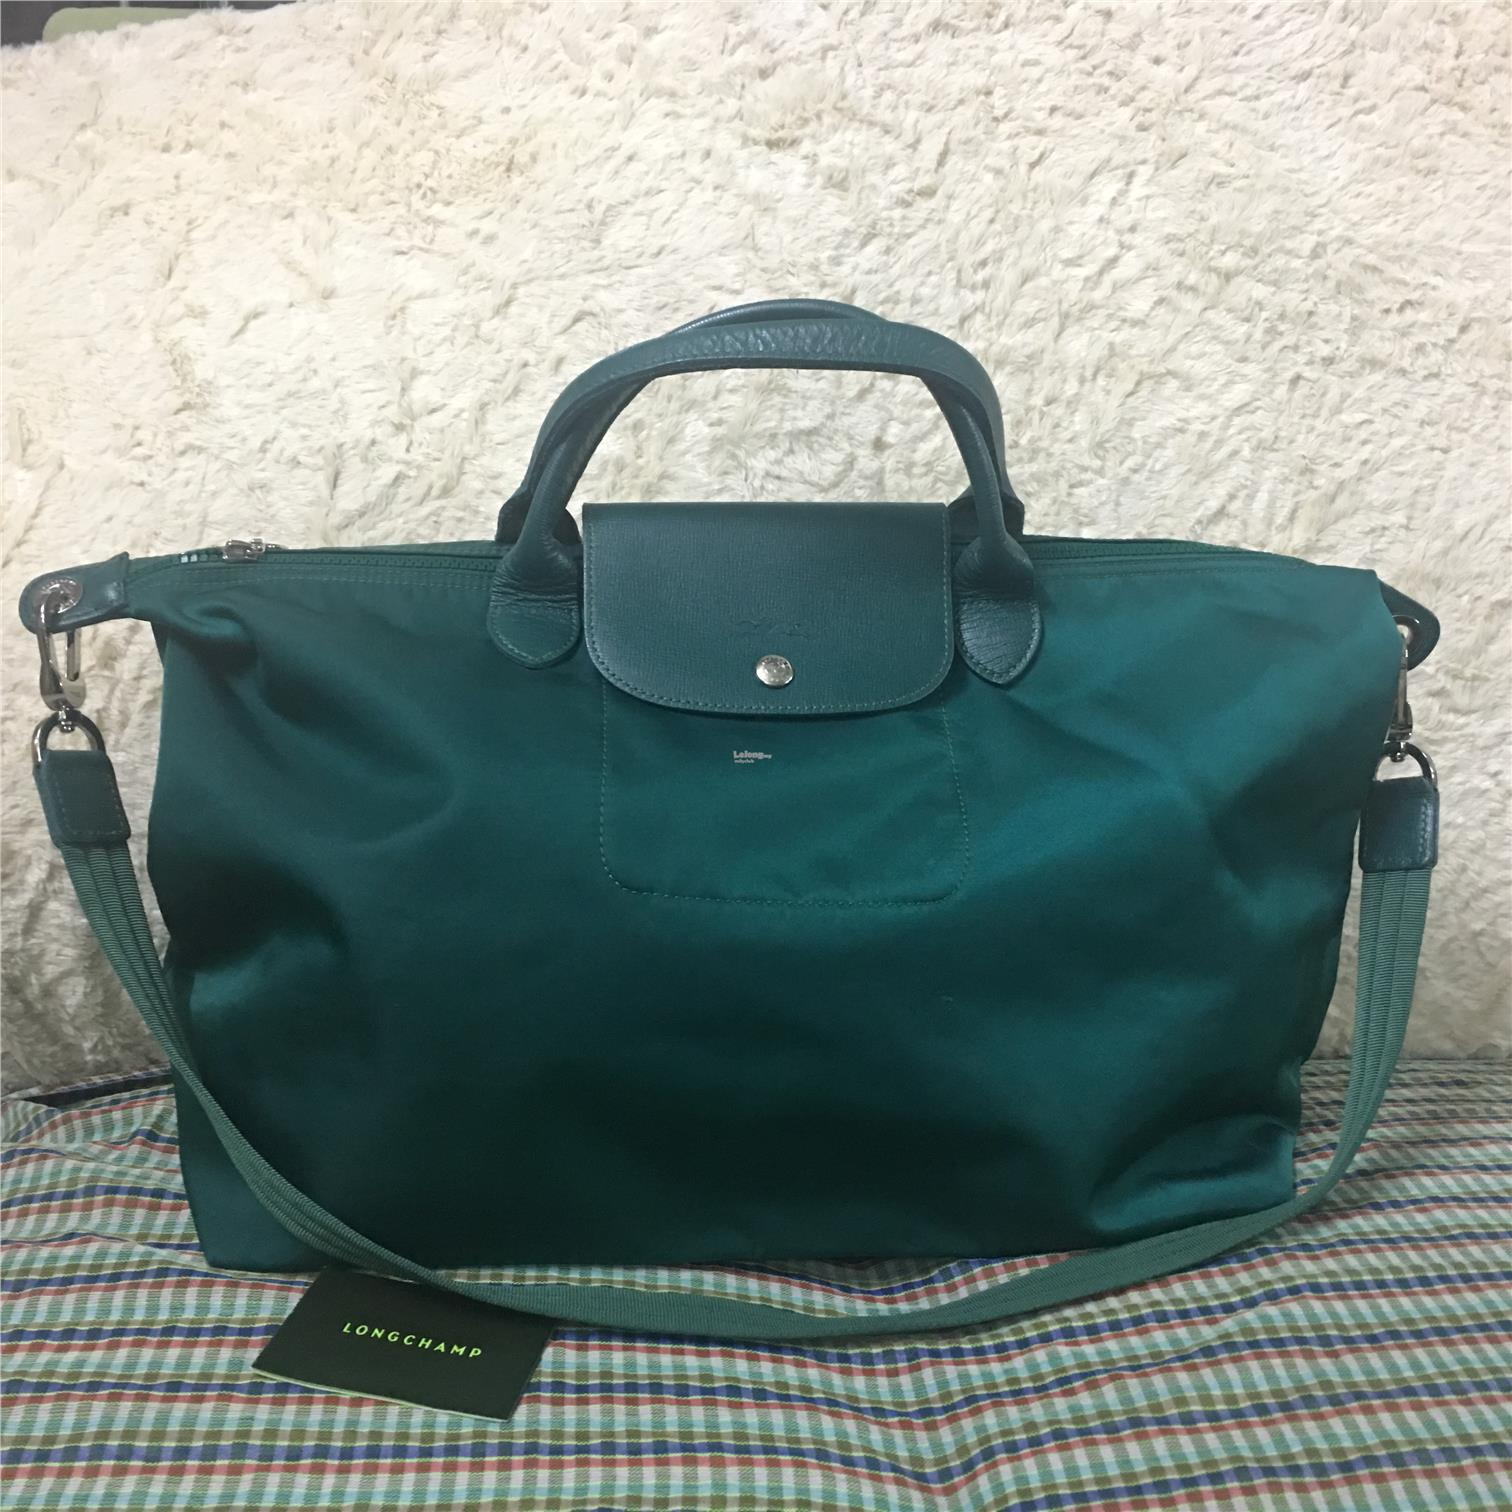 Pre-loved - Longchamp 'Le Pliage ' Neo Large Nylon Tote Bag